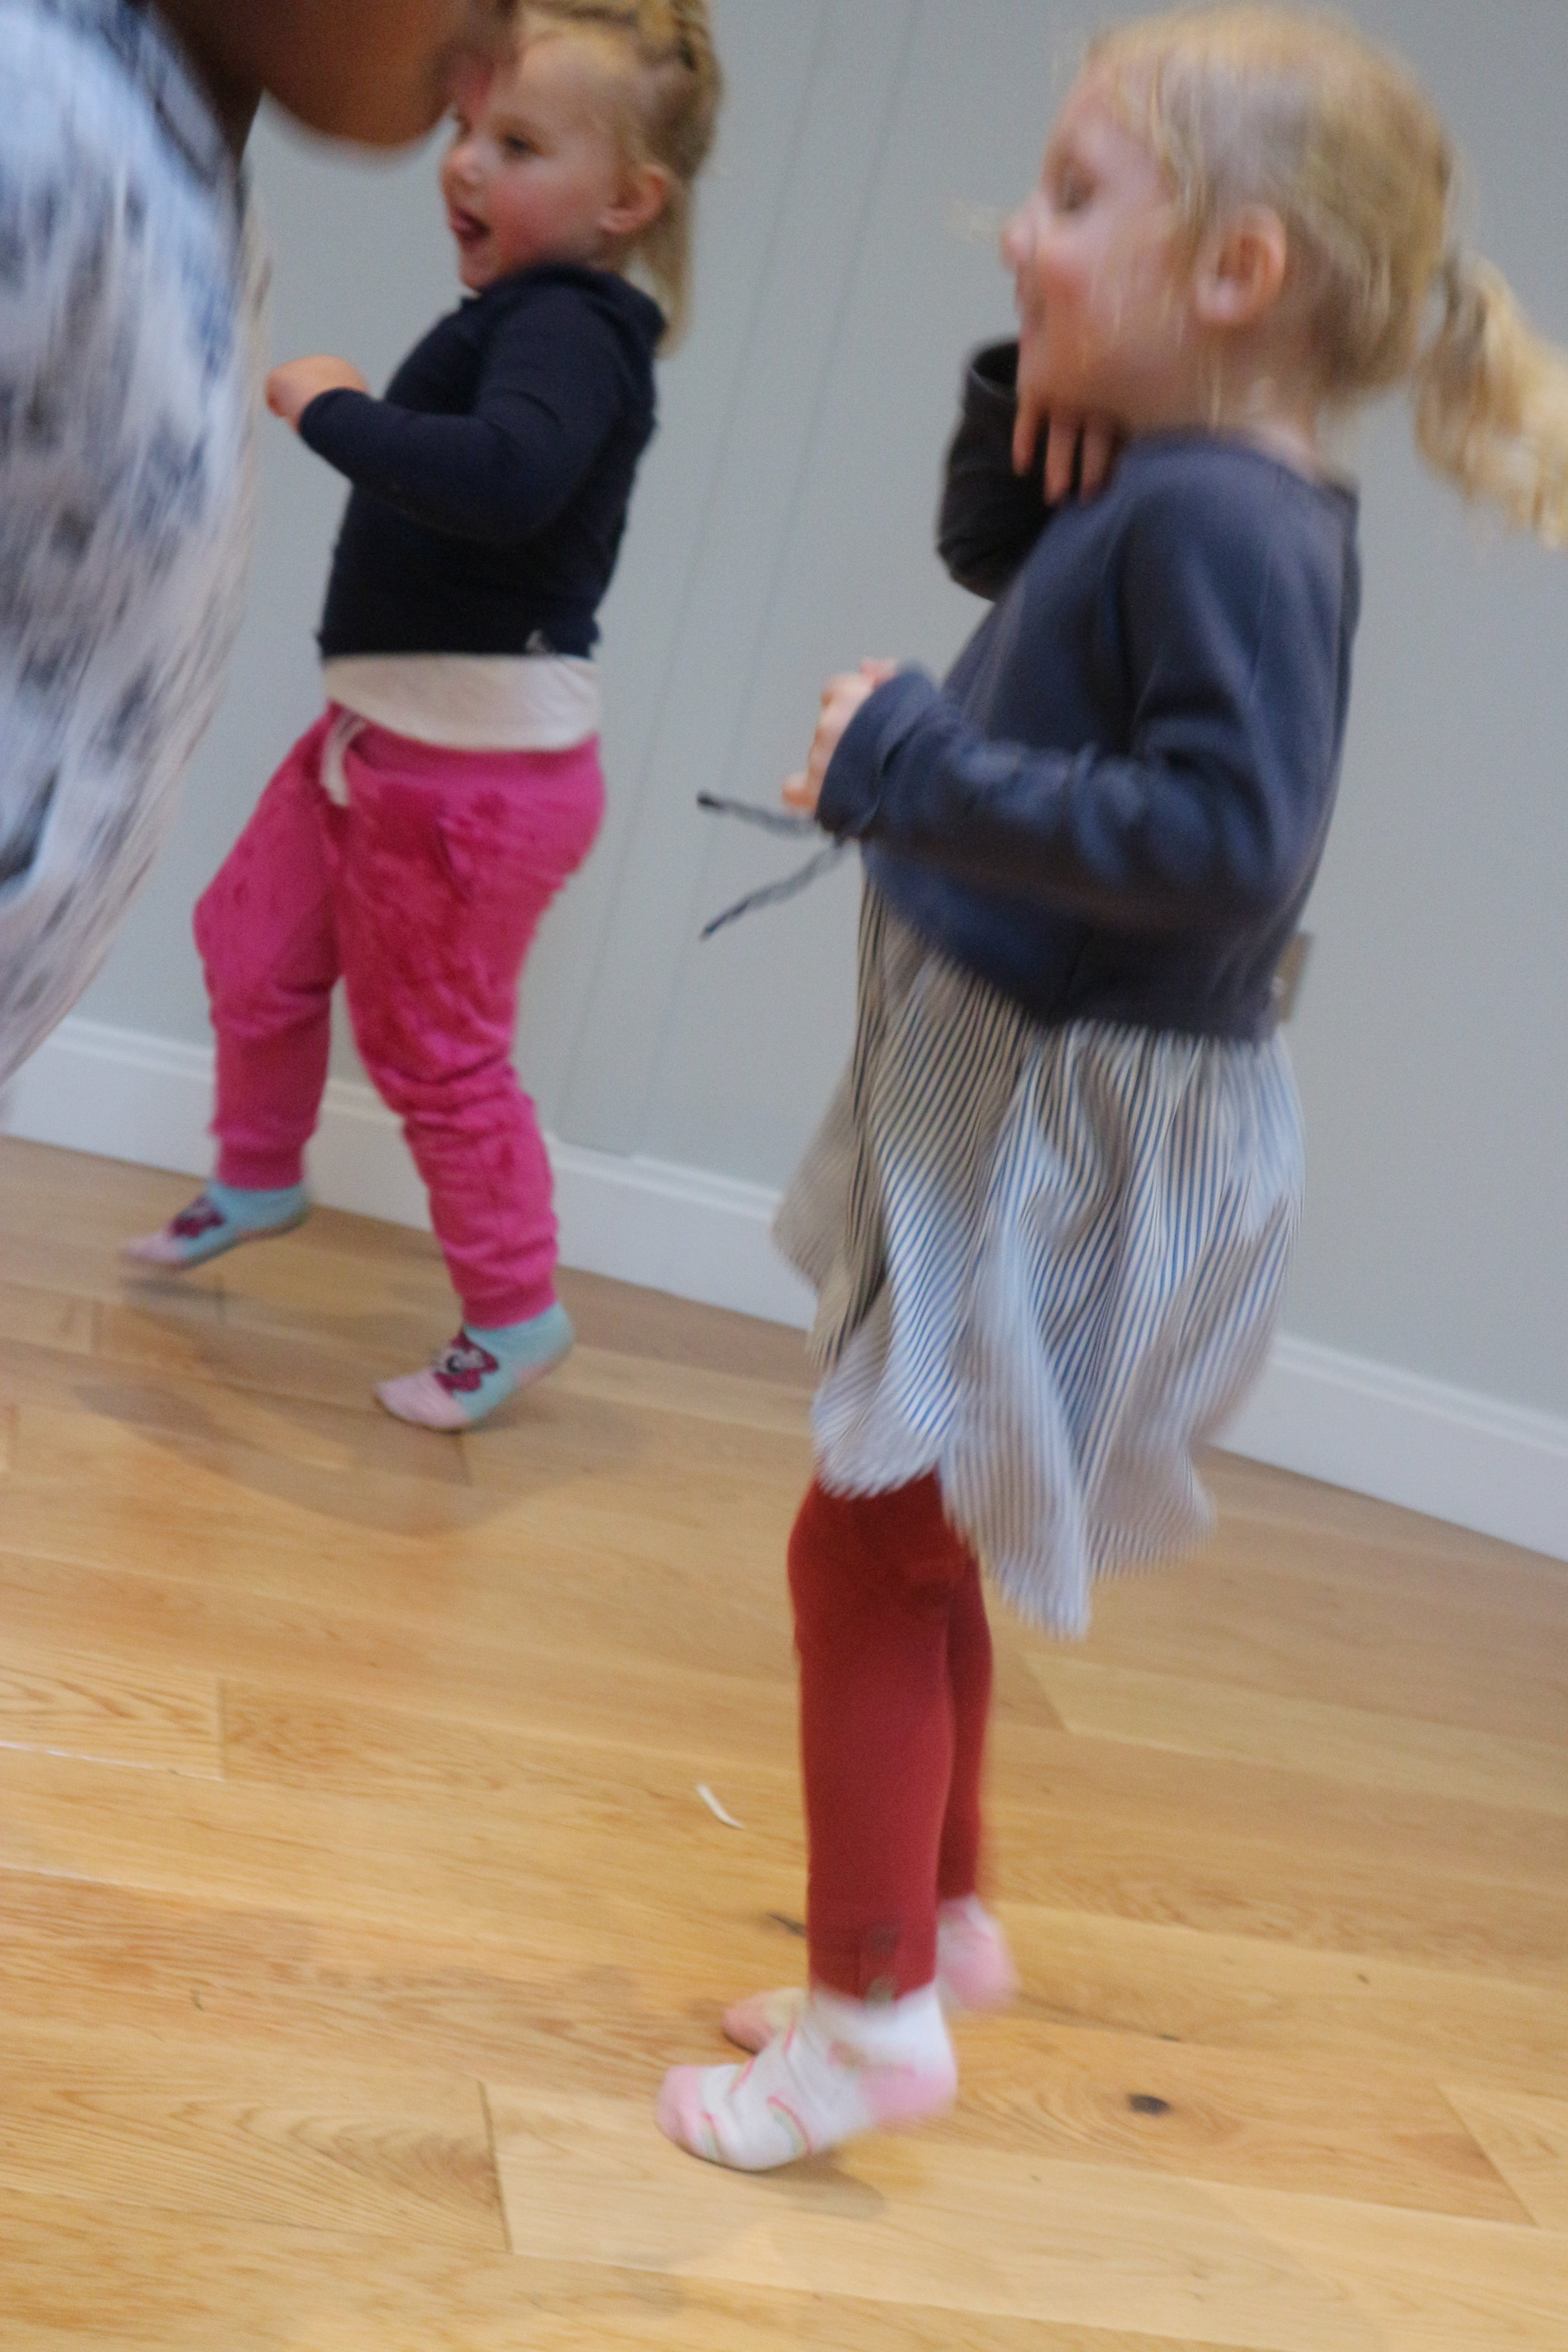 Winter warm ups - Jumping, crawling, spinning, wriggling….